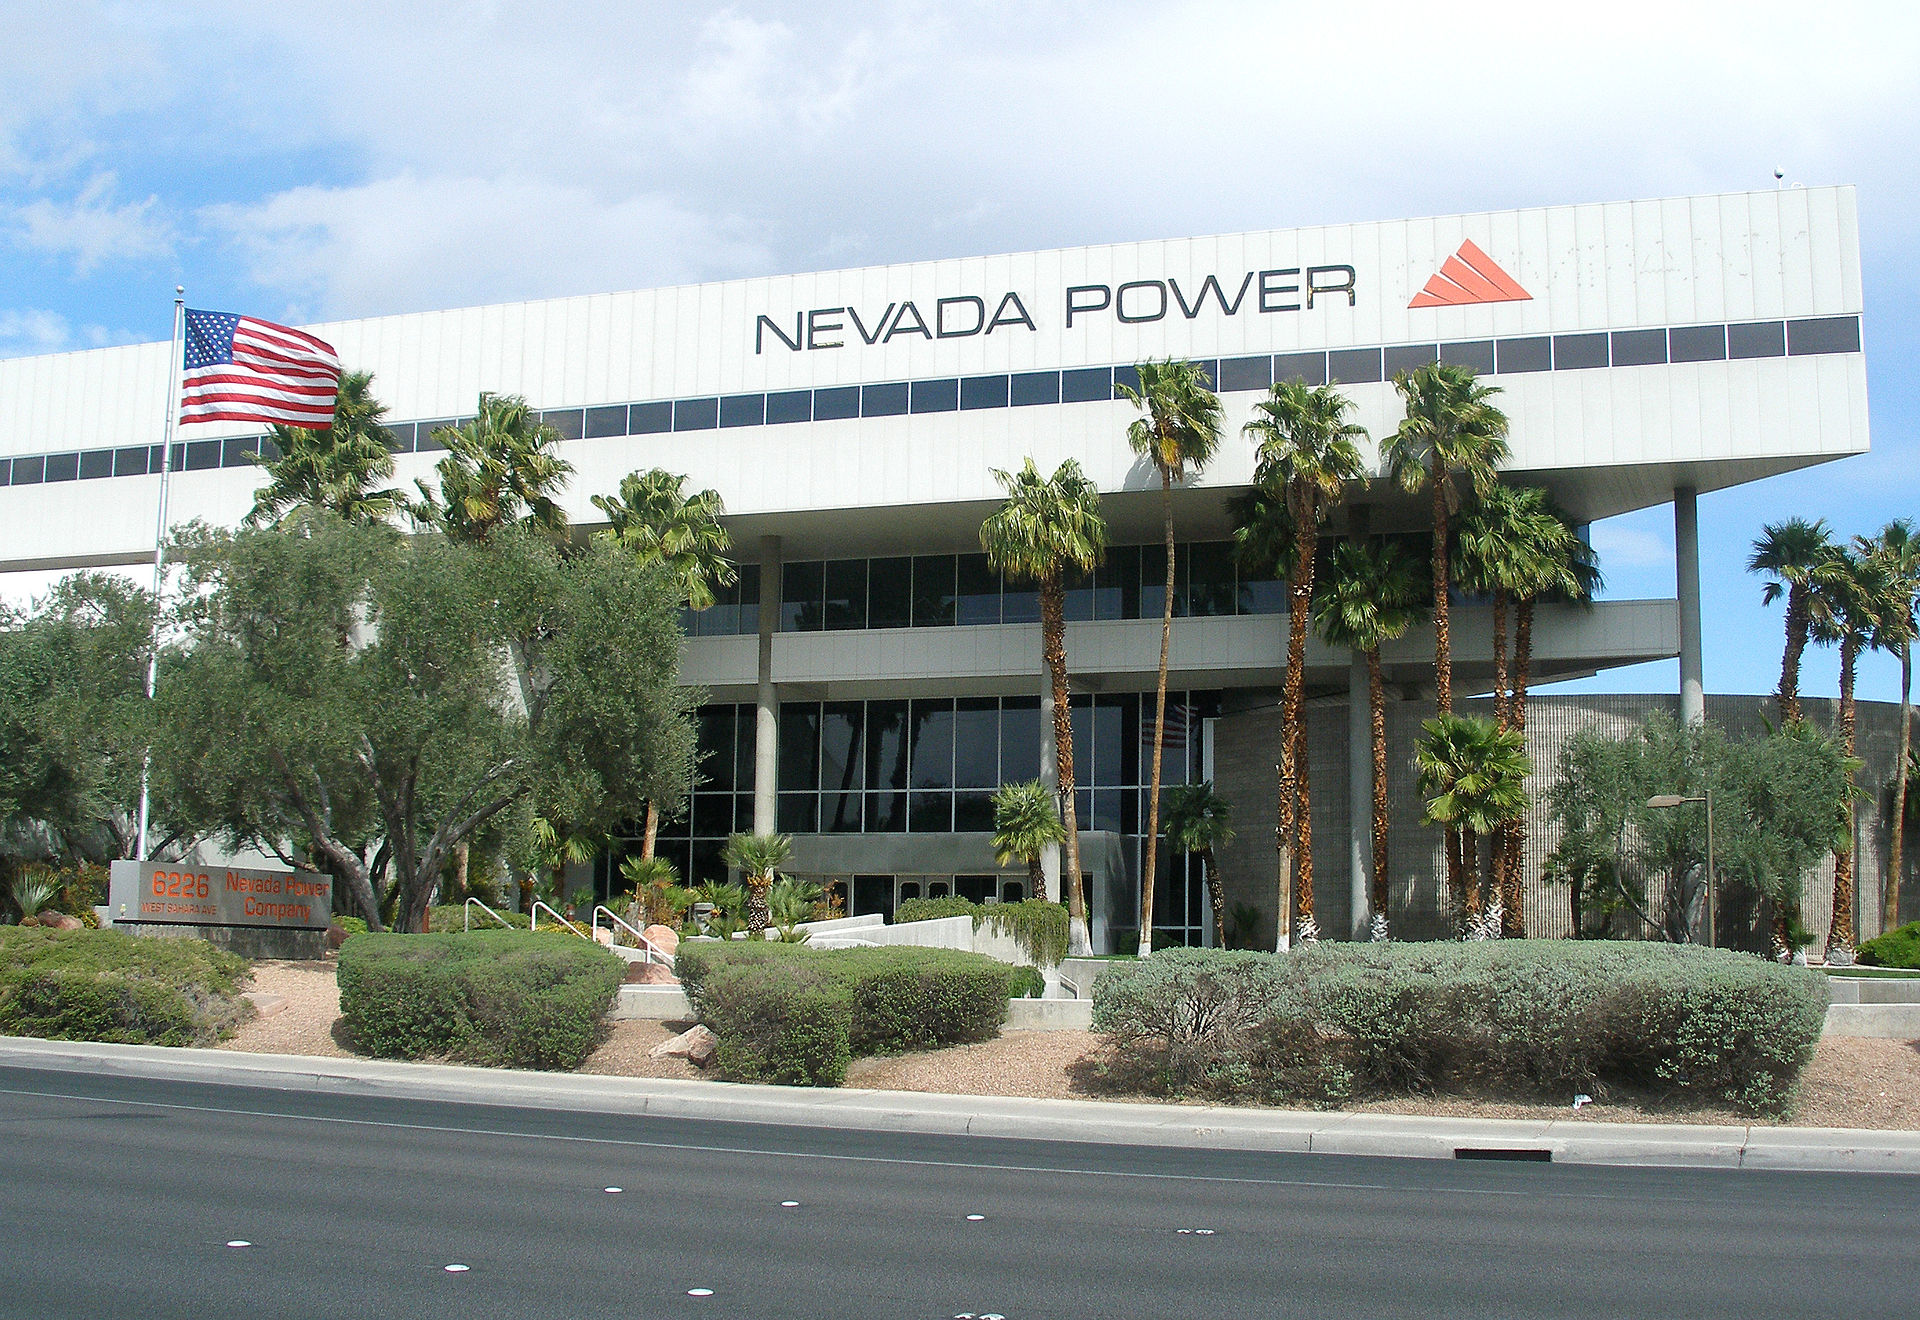 Nevada Power Company Wikipedia